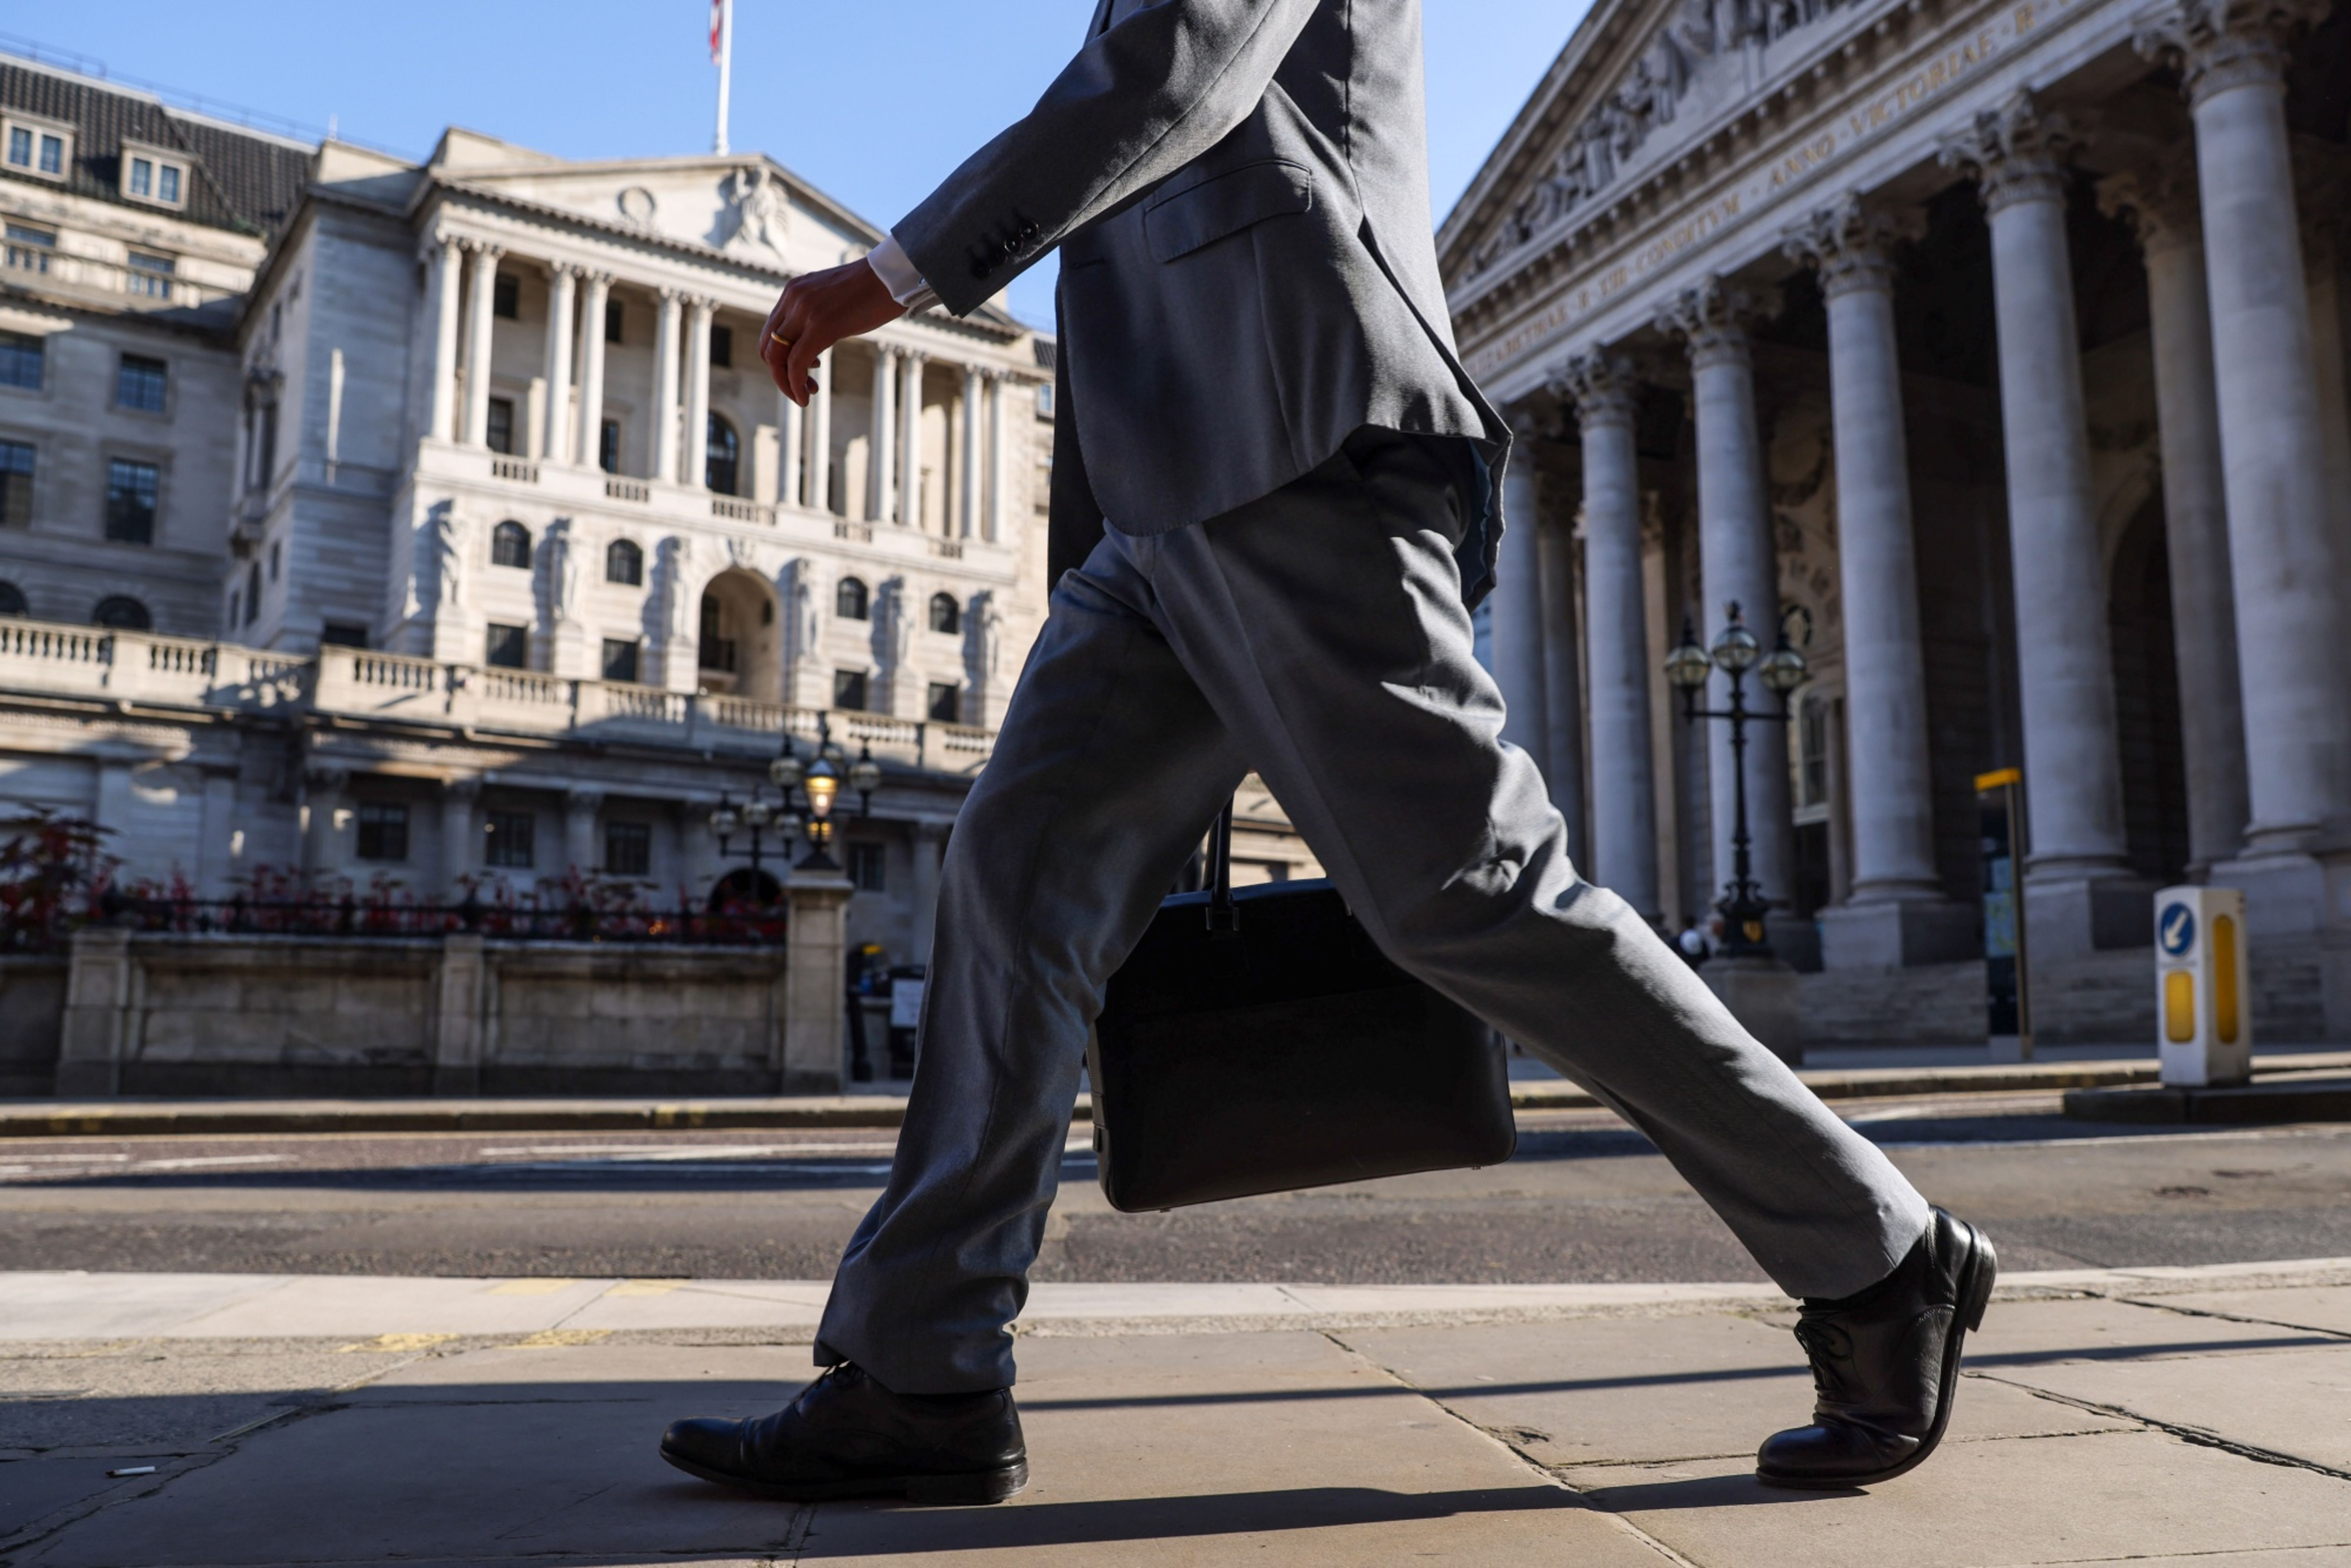 The Bank of England in the City of London on Aug. 5, 2021. MUST CREDIT: Bloomberg photo by Hollie Adams.